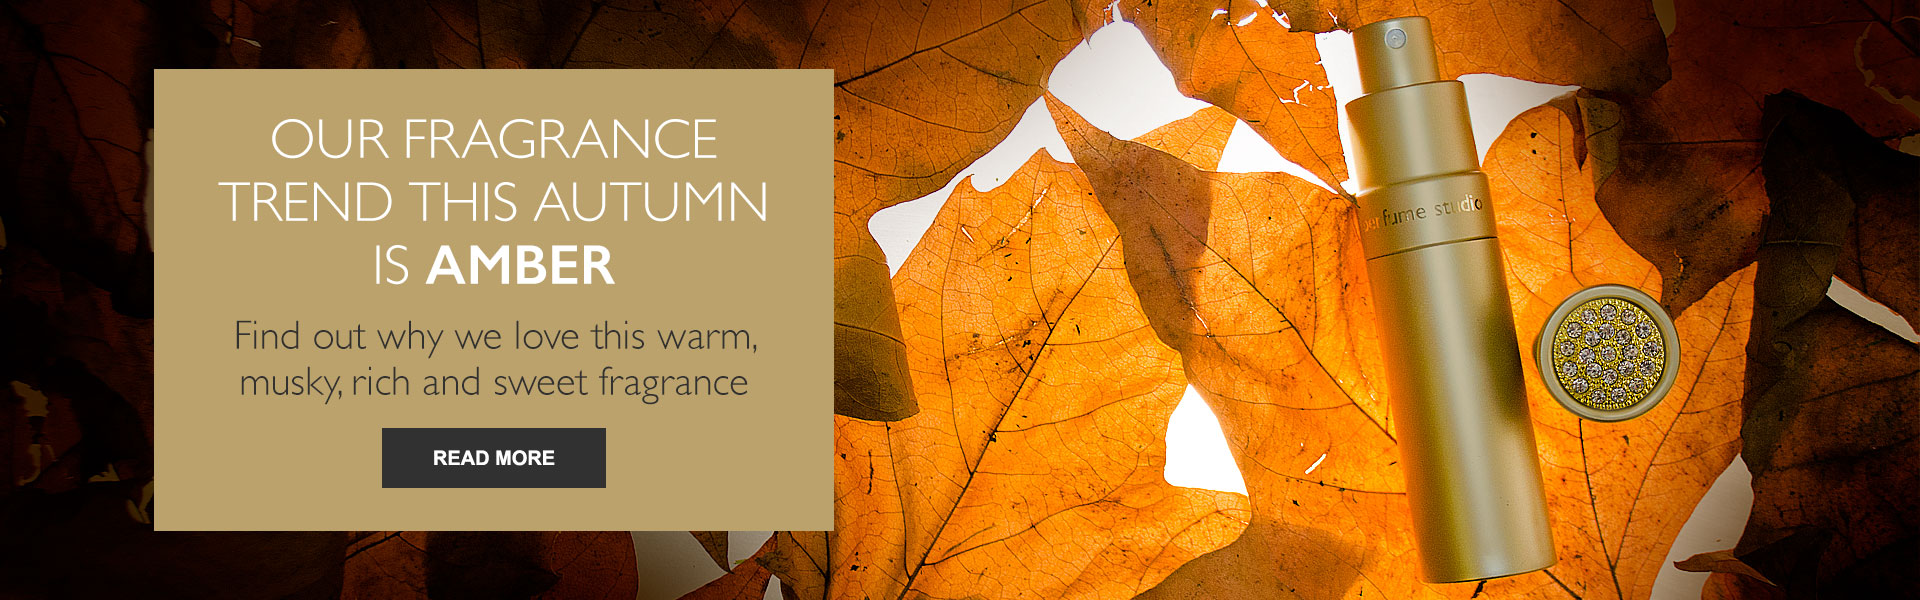 Our fragrance trend this autumn is AMBER - Find out why we love this warm, musky, rich and sweet fragrance